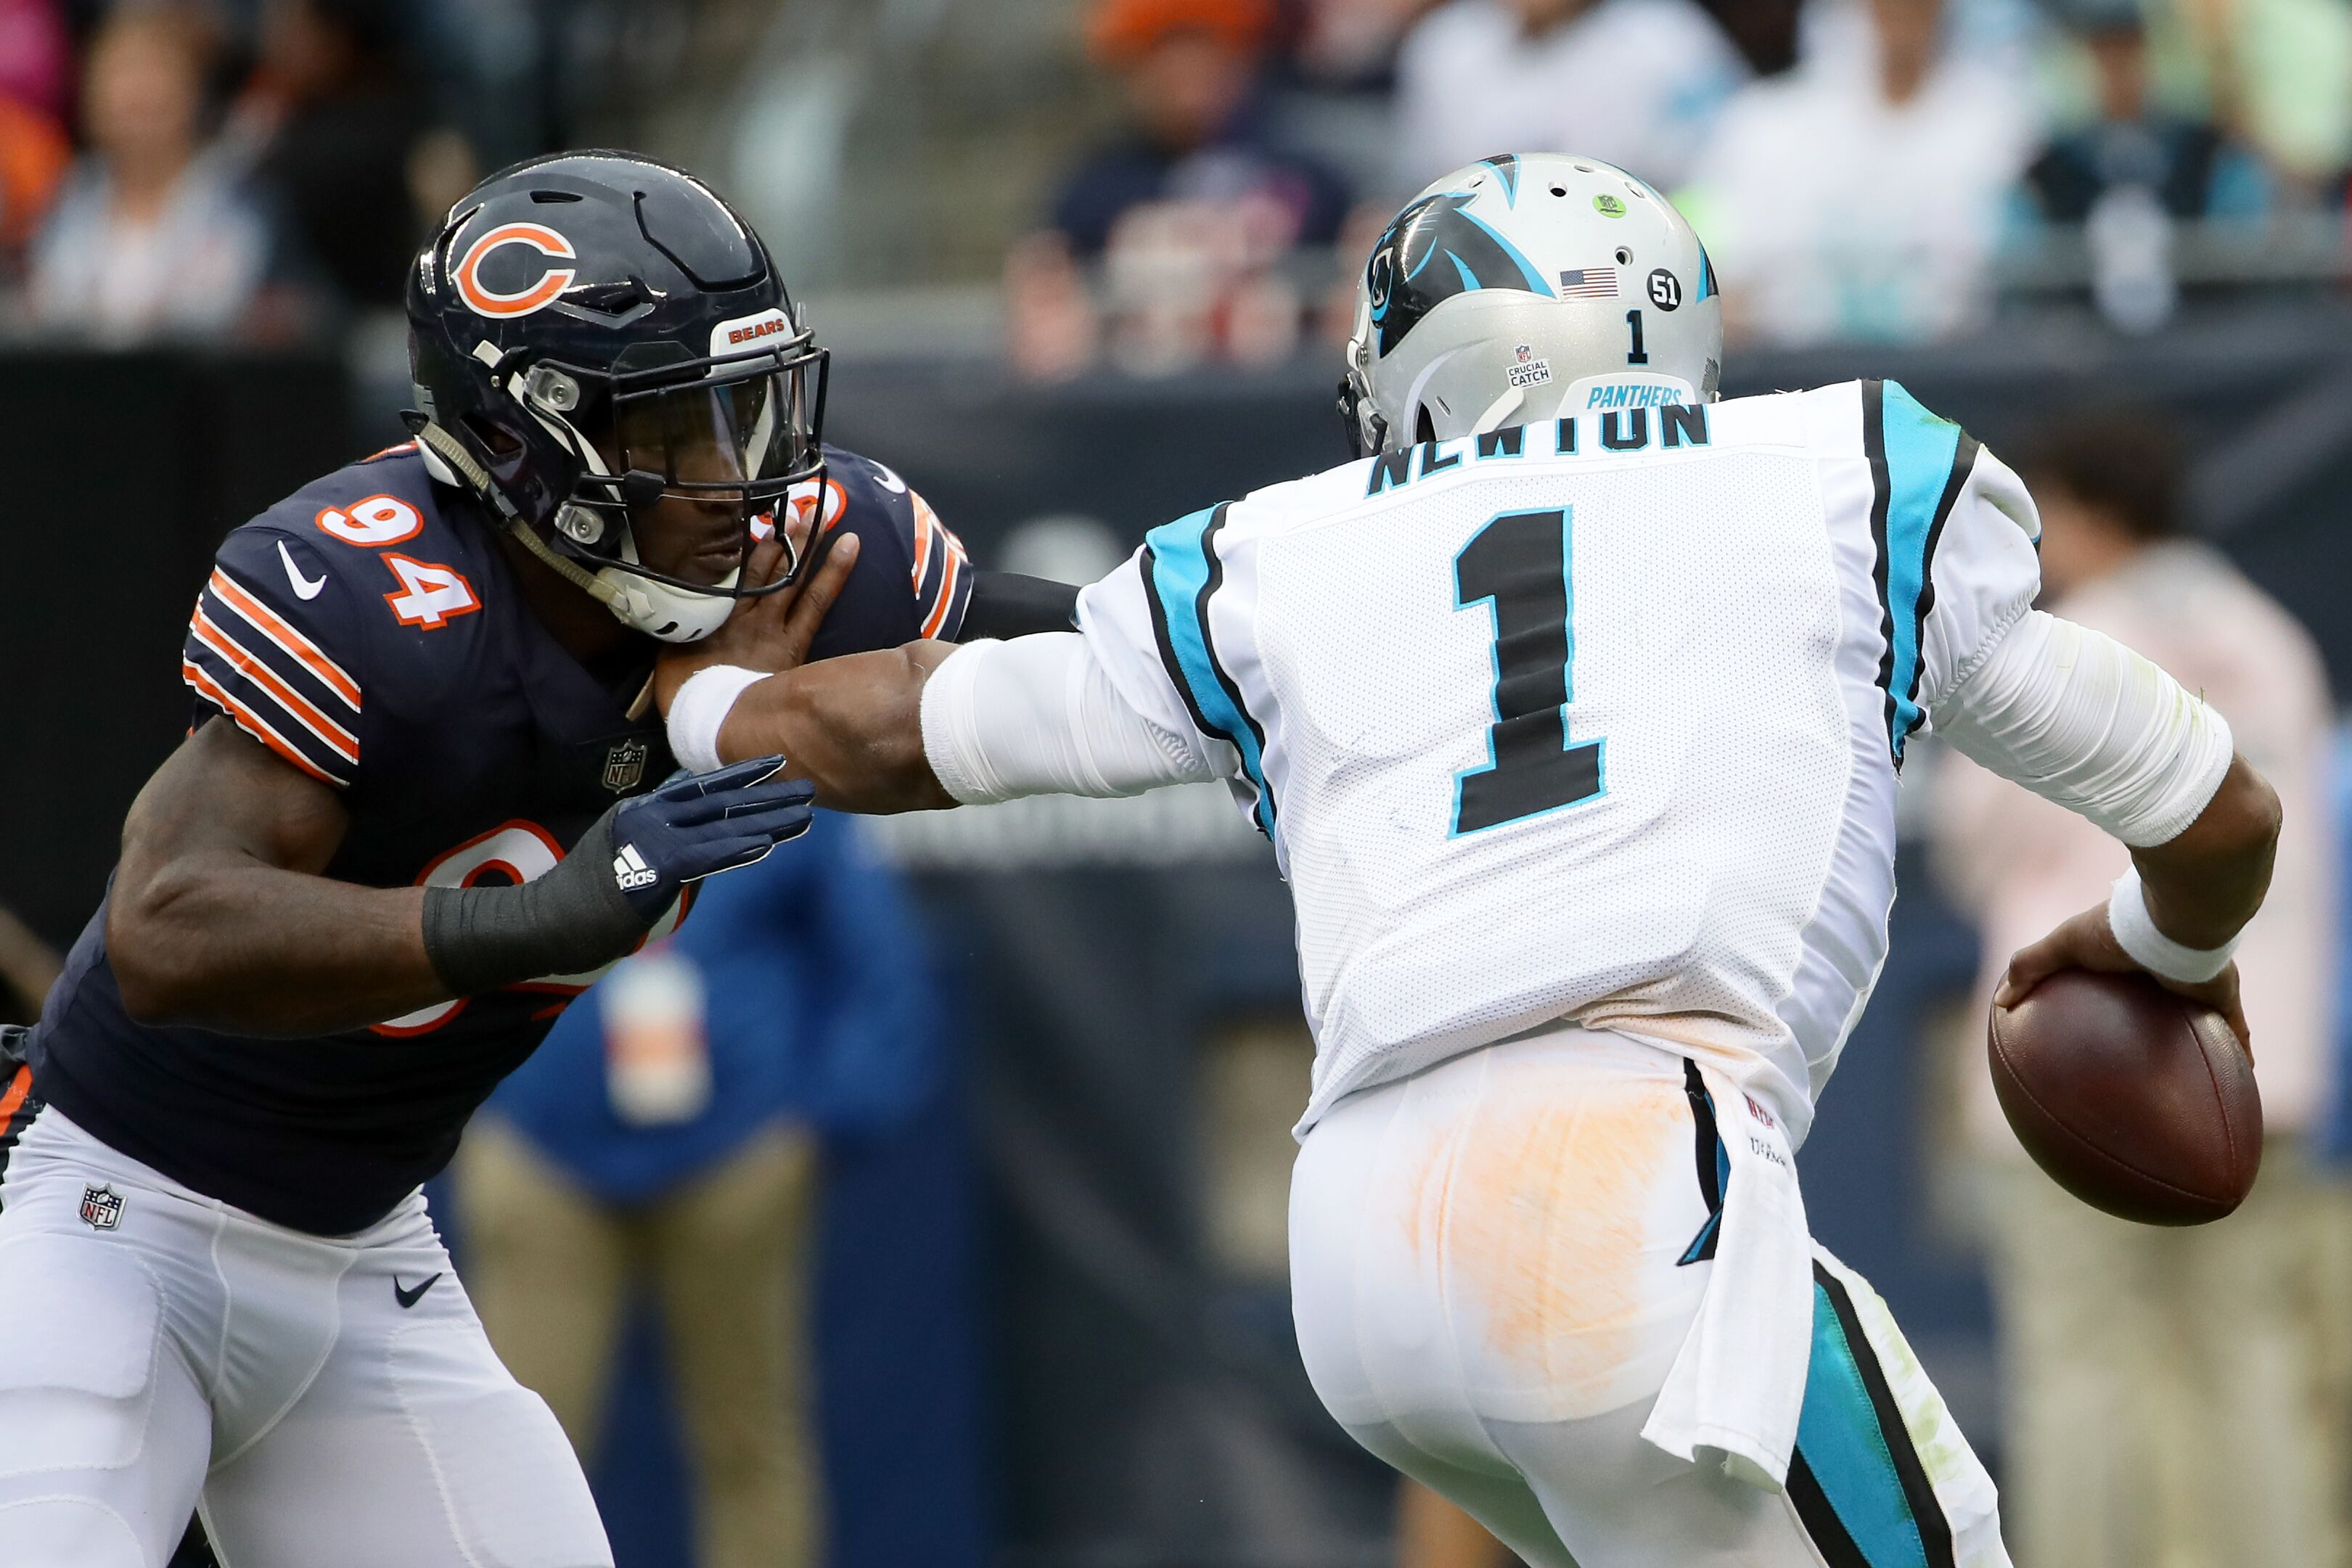 865096510-carolina-panthers-v-chicago-bears.jpg